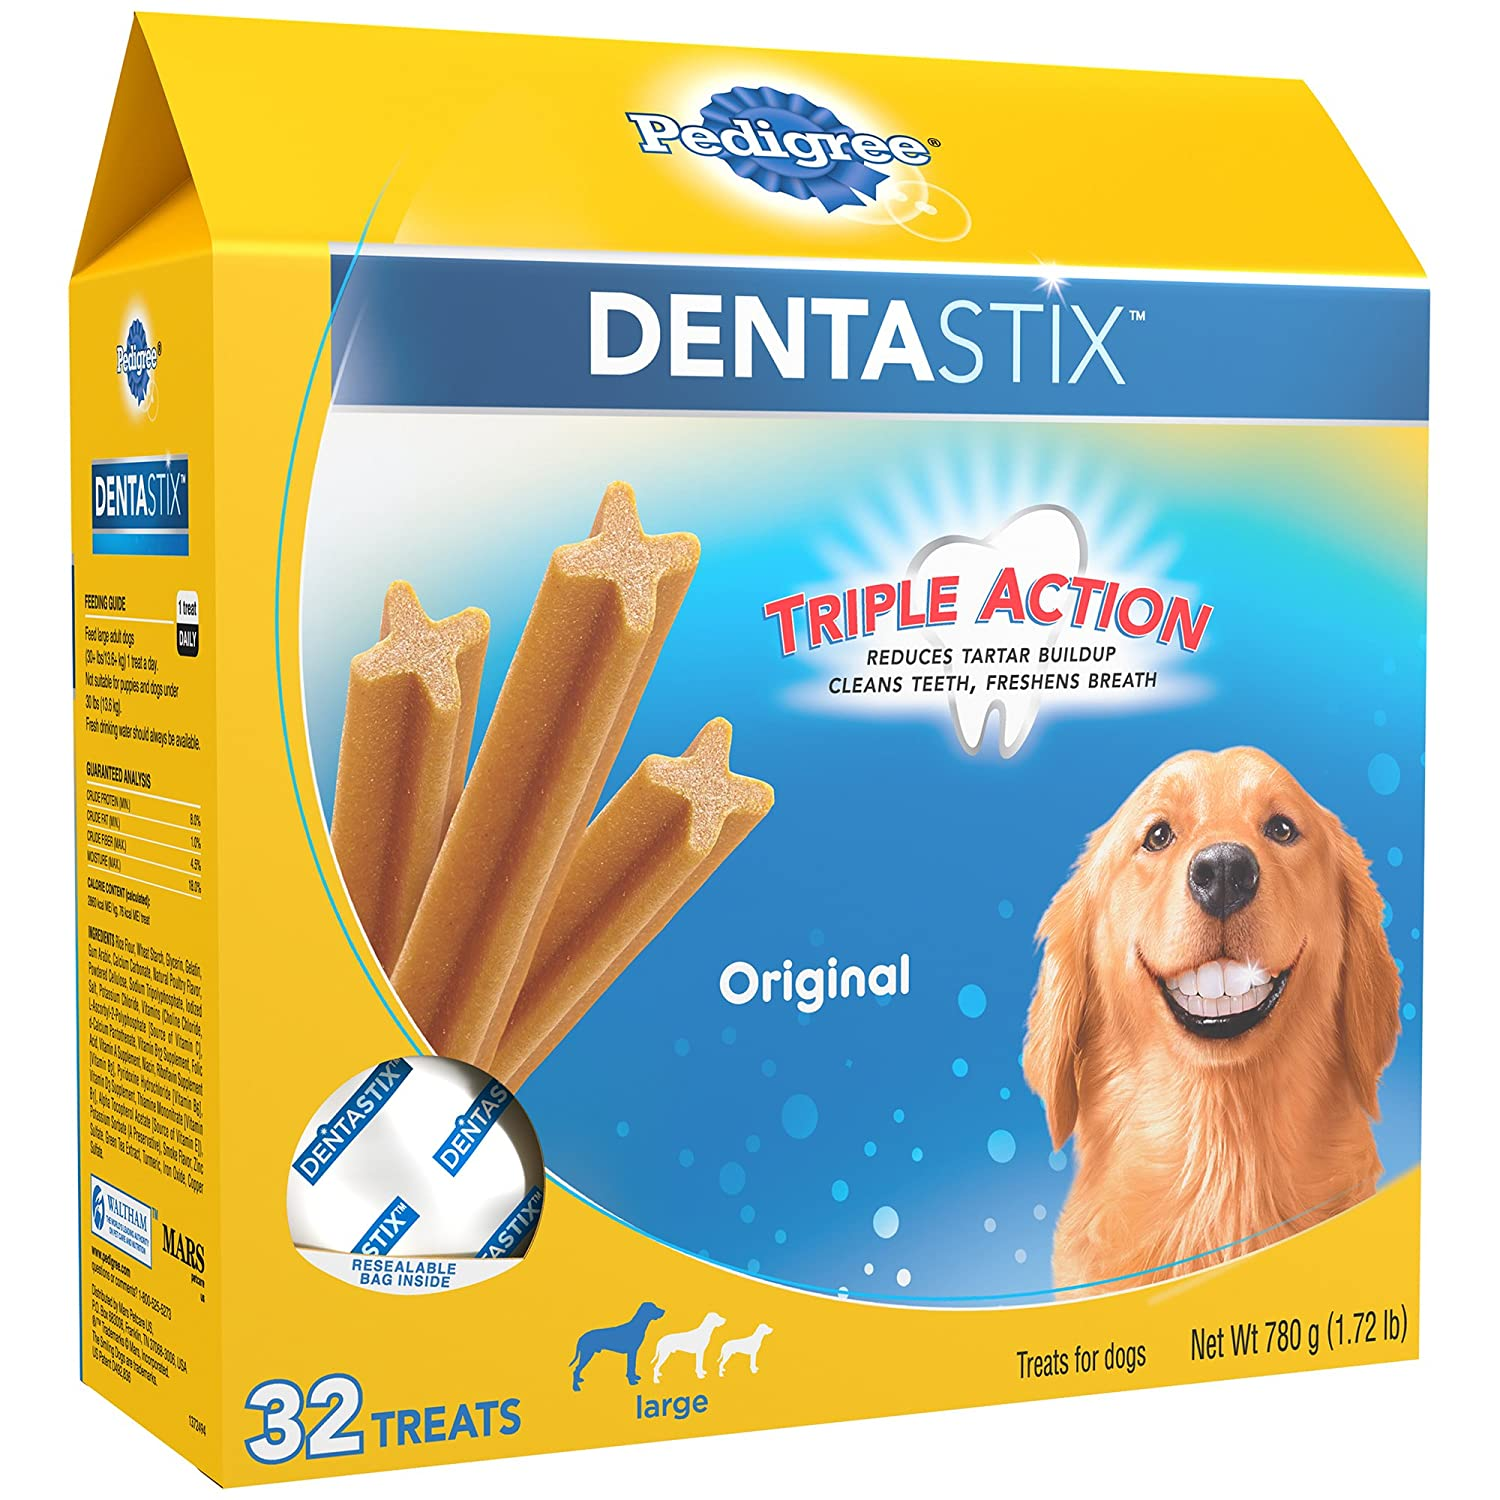 Amazoncom Treats Dogs Pet Supplies Cookies Biscuits - Every day this dog goes shopping all by himself to get treats